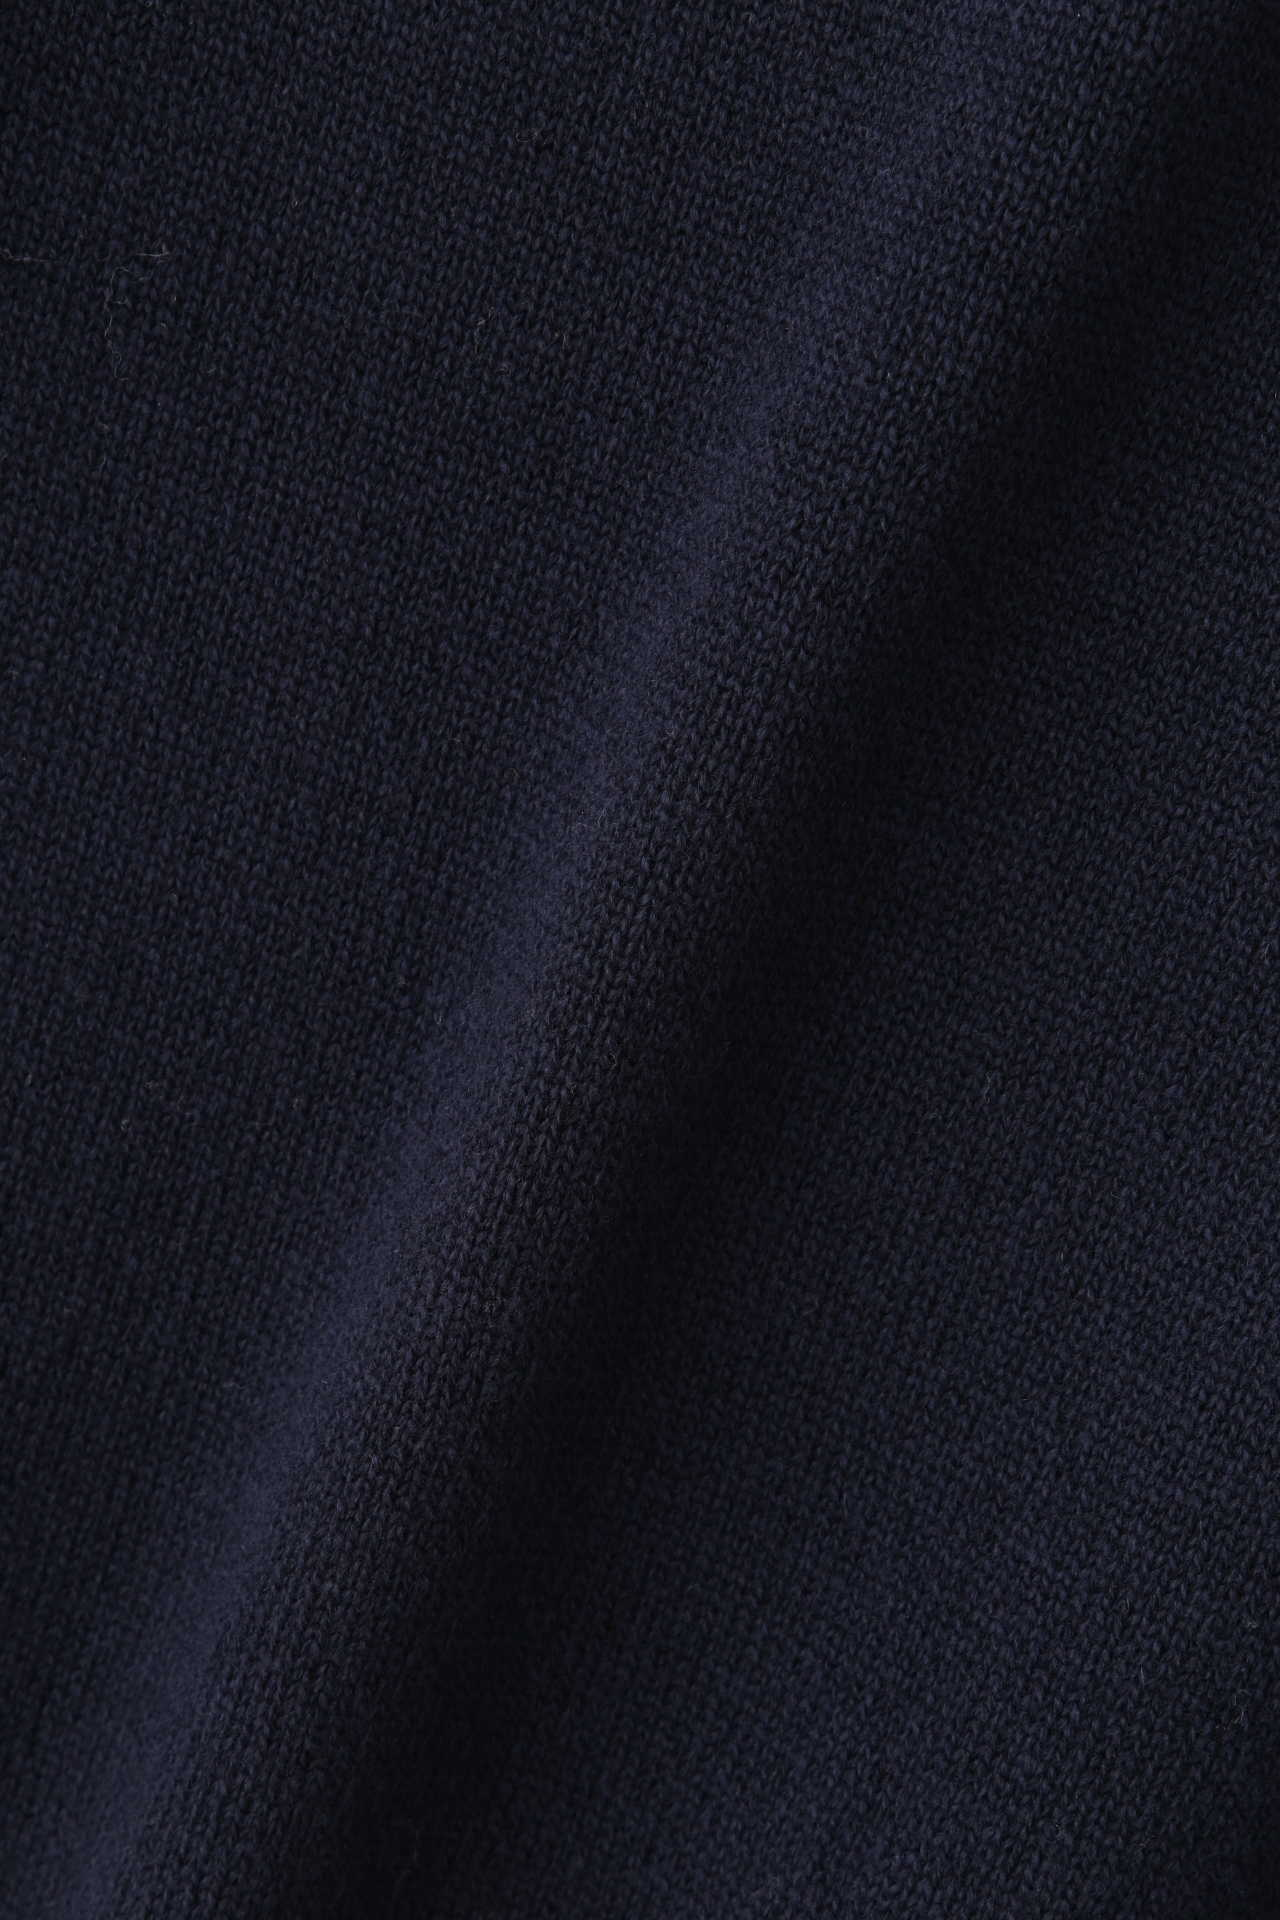 PLAIN WOOL COTTON13